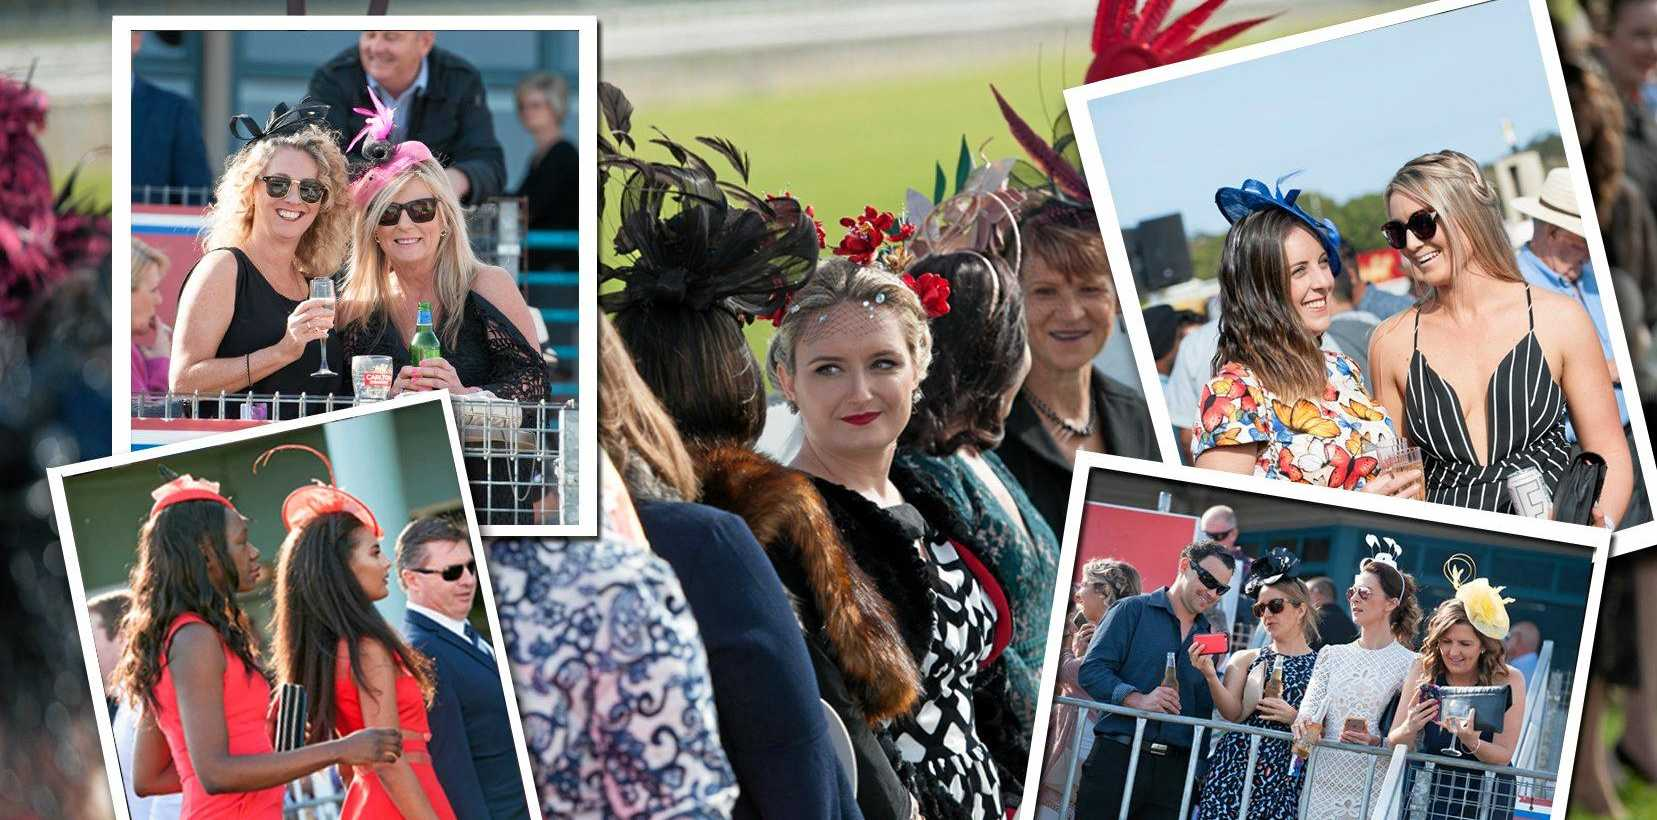 FASHIONS ON THE FIELD: The Carlton Draught Coffs Harbour Gold Cup sees its 54th instalment at the Coffs Harbour Racing Club on Thursday from 11am.